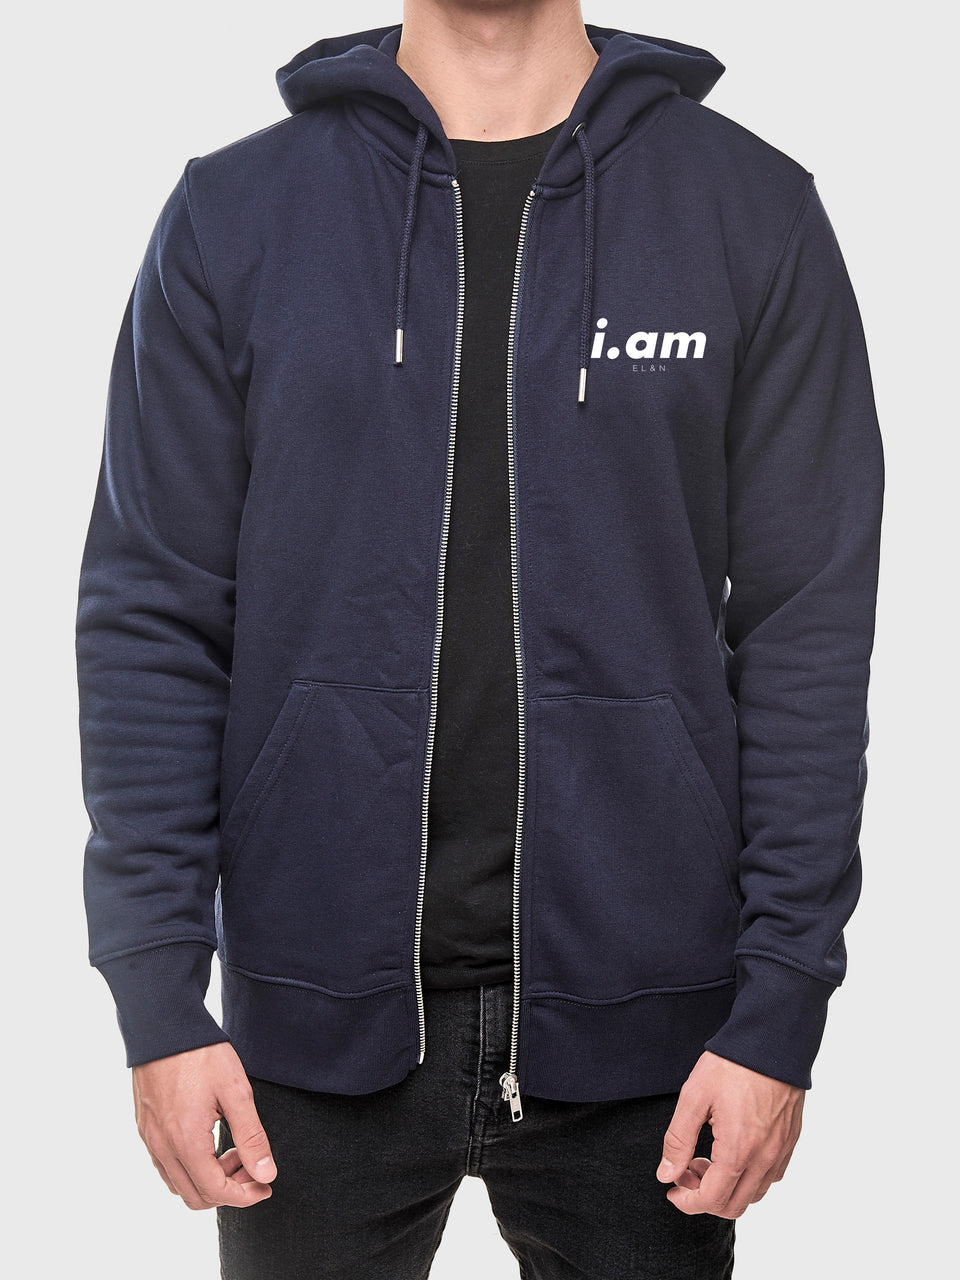 Not your baby - Navy - Unisex zip up hoodie